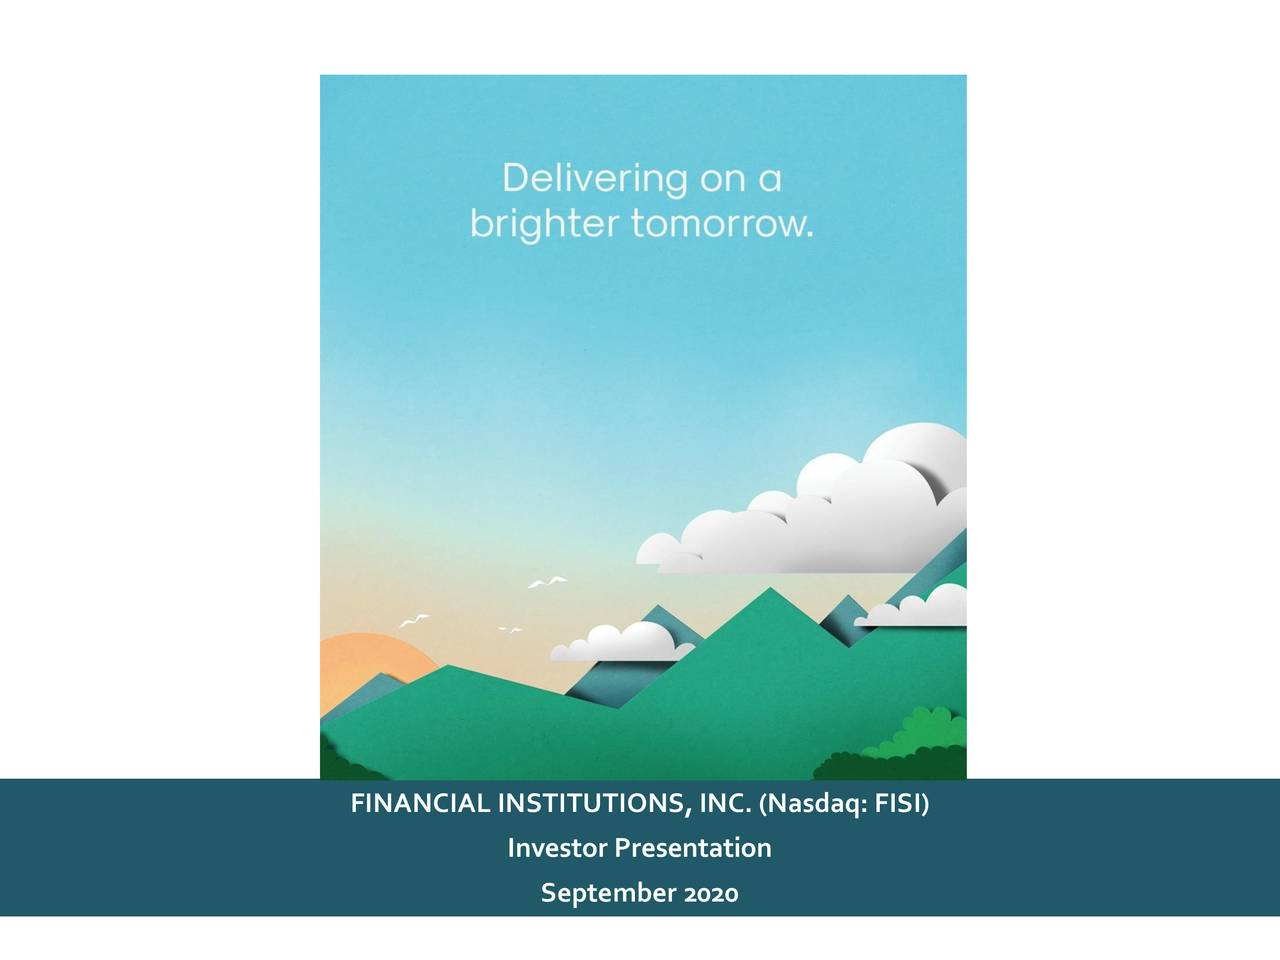 Financial Institutions (FISI) Investor Presentation - Slideshow (NASDAQ:FISI)